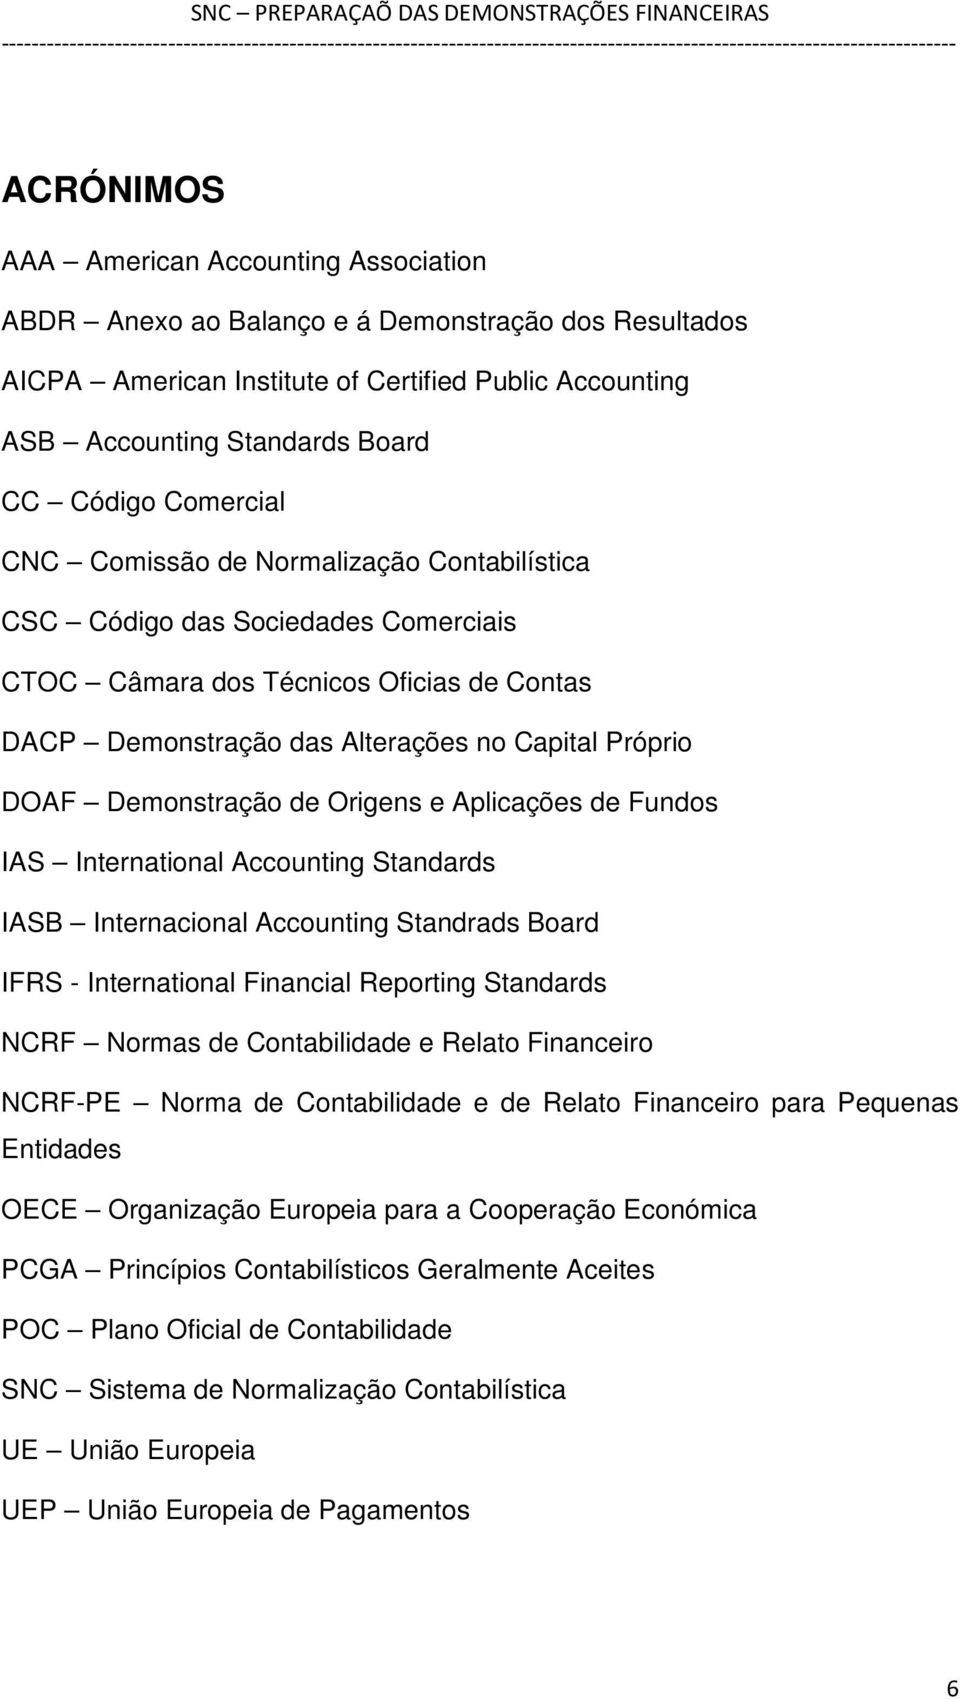 Demonstração de Origens e Aplicações de Fundos IAS International Accounting Standards IASB Internacional Accounting Standrads Board IFRS - International Financial Reporting Standards NCRF Normas de